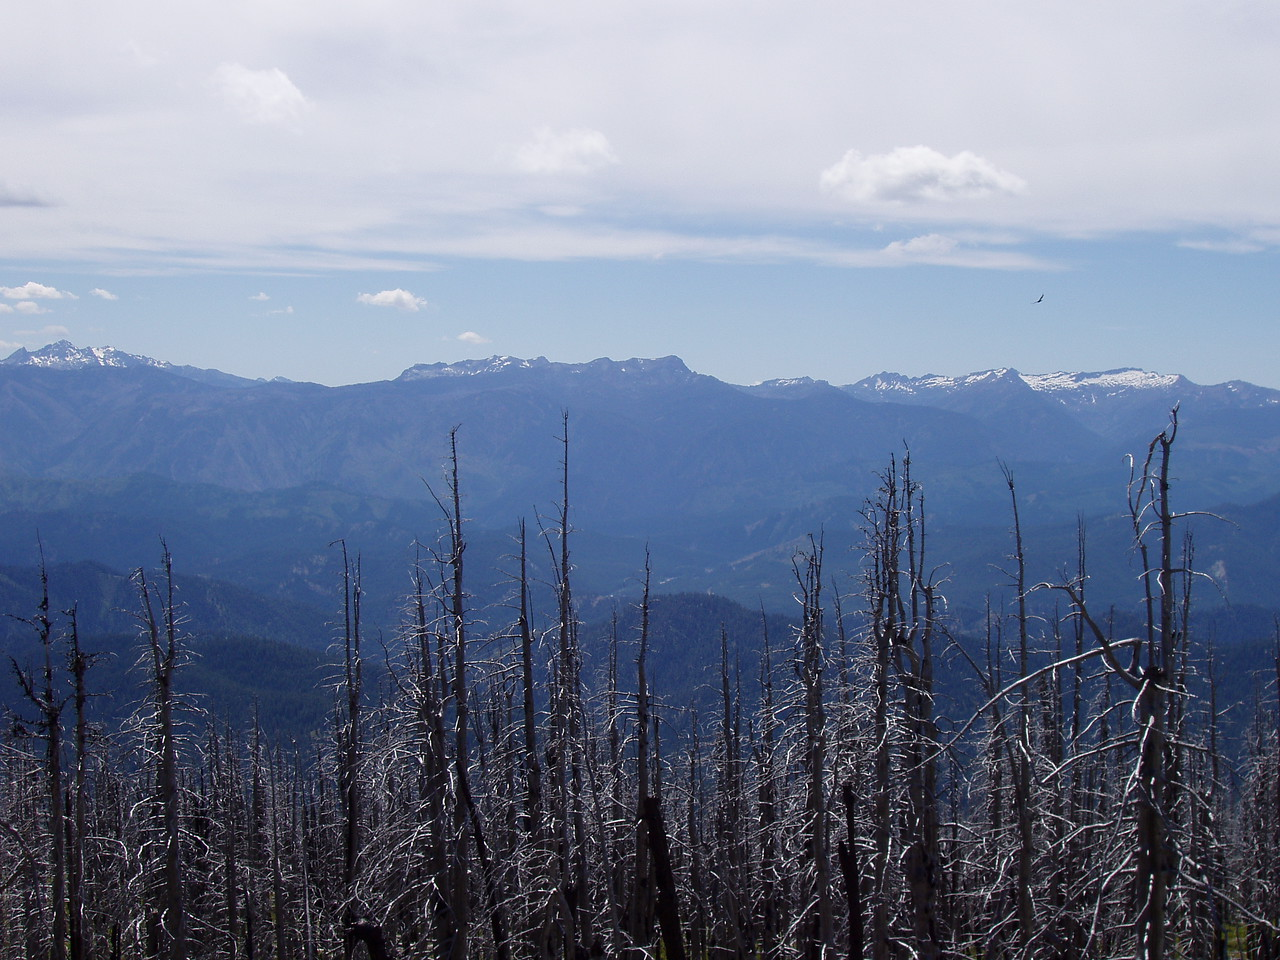 This is the southern most photo in a group of three looking west from Sugarloaf lookout